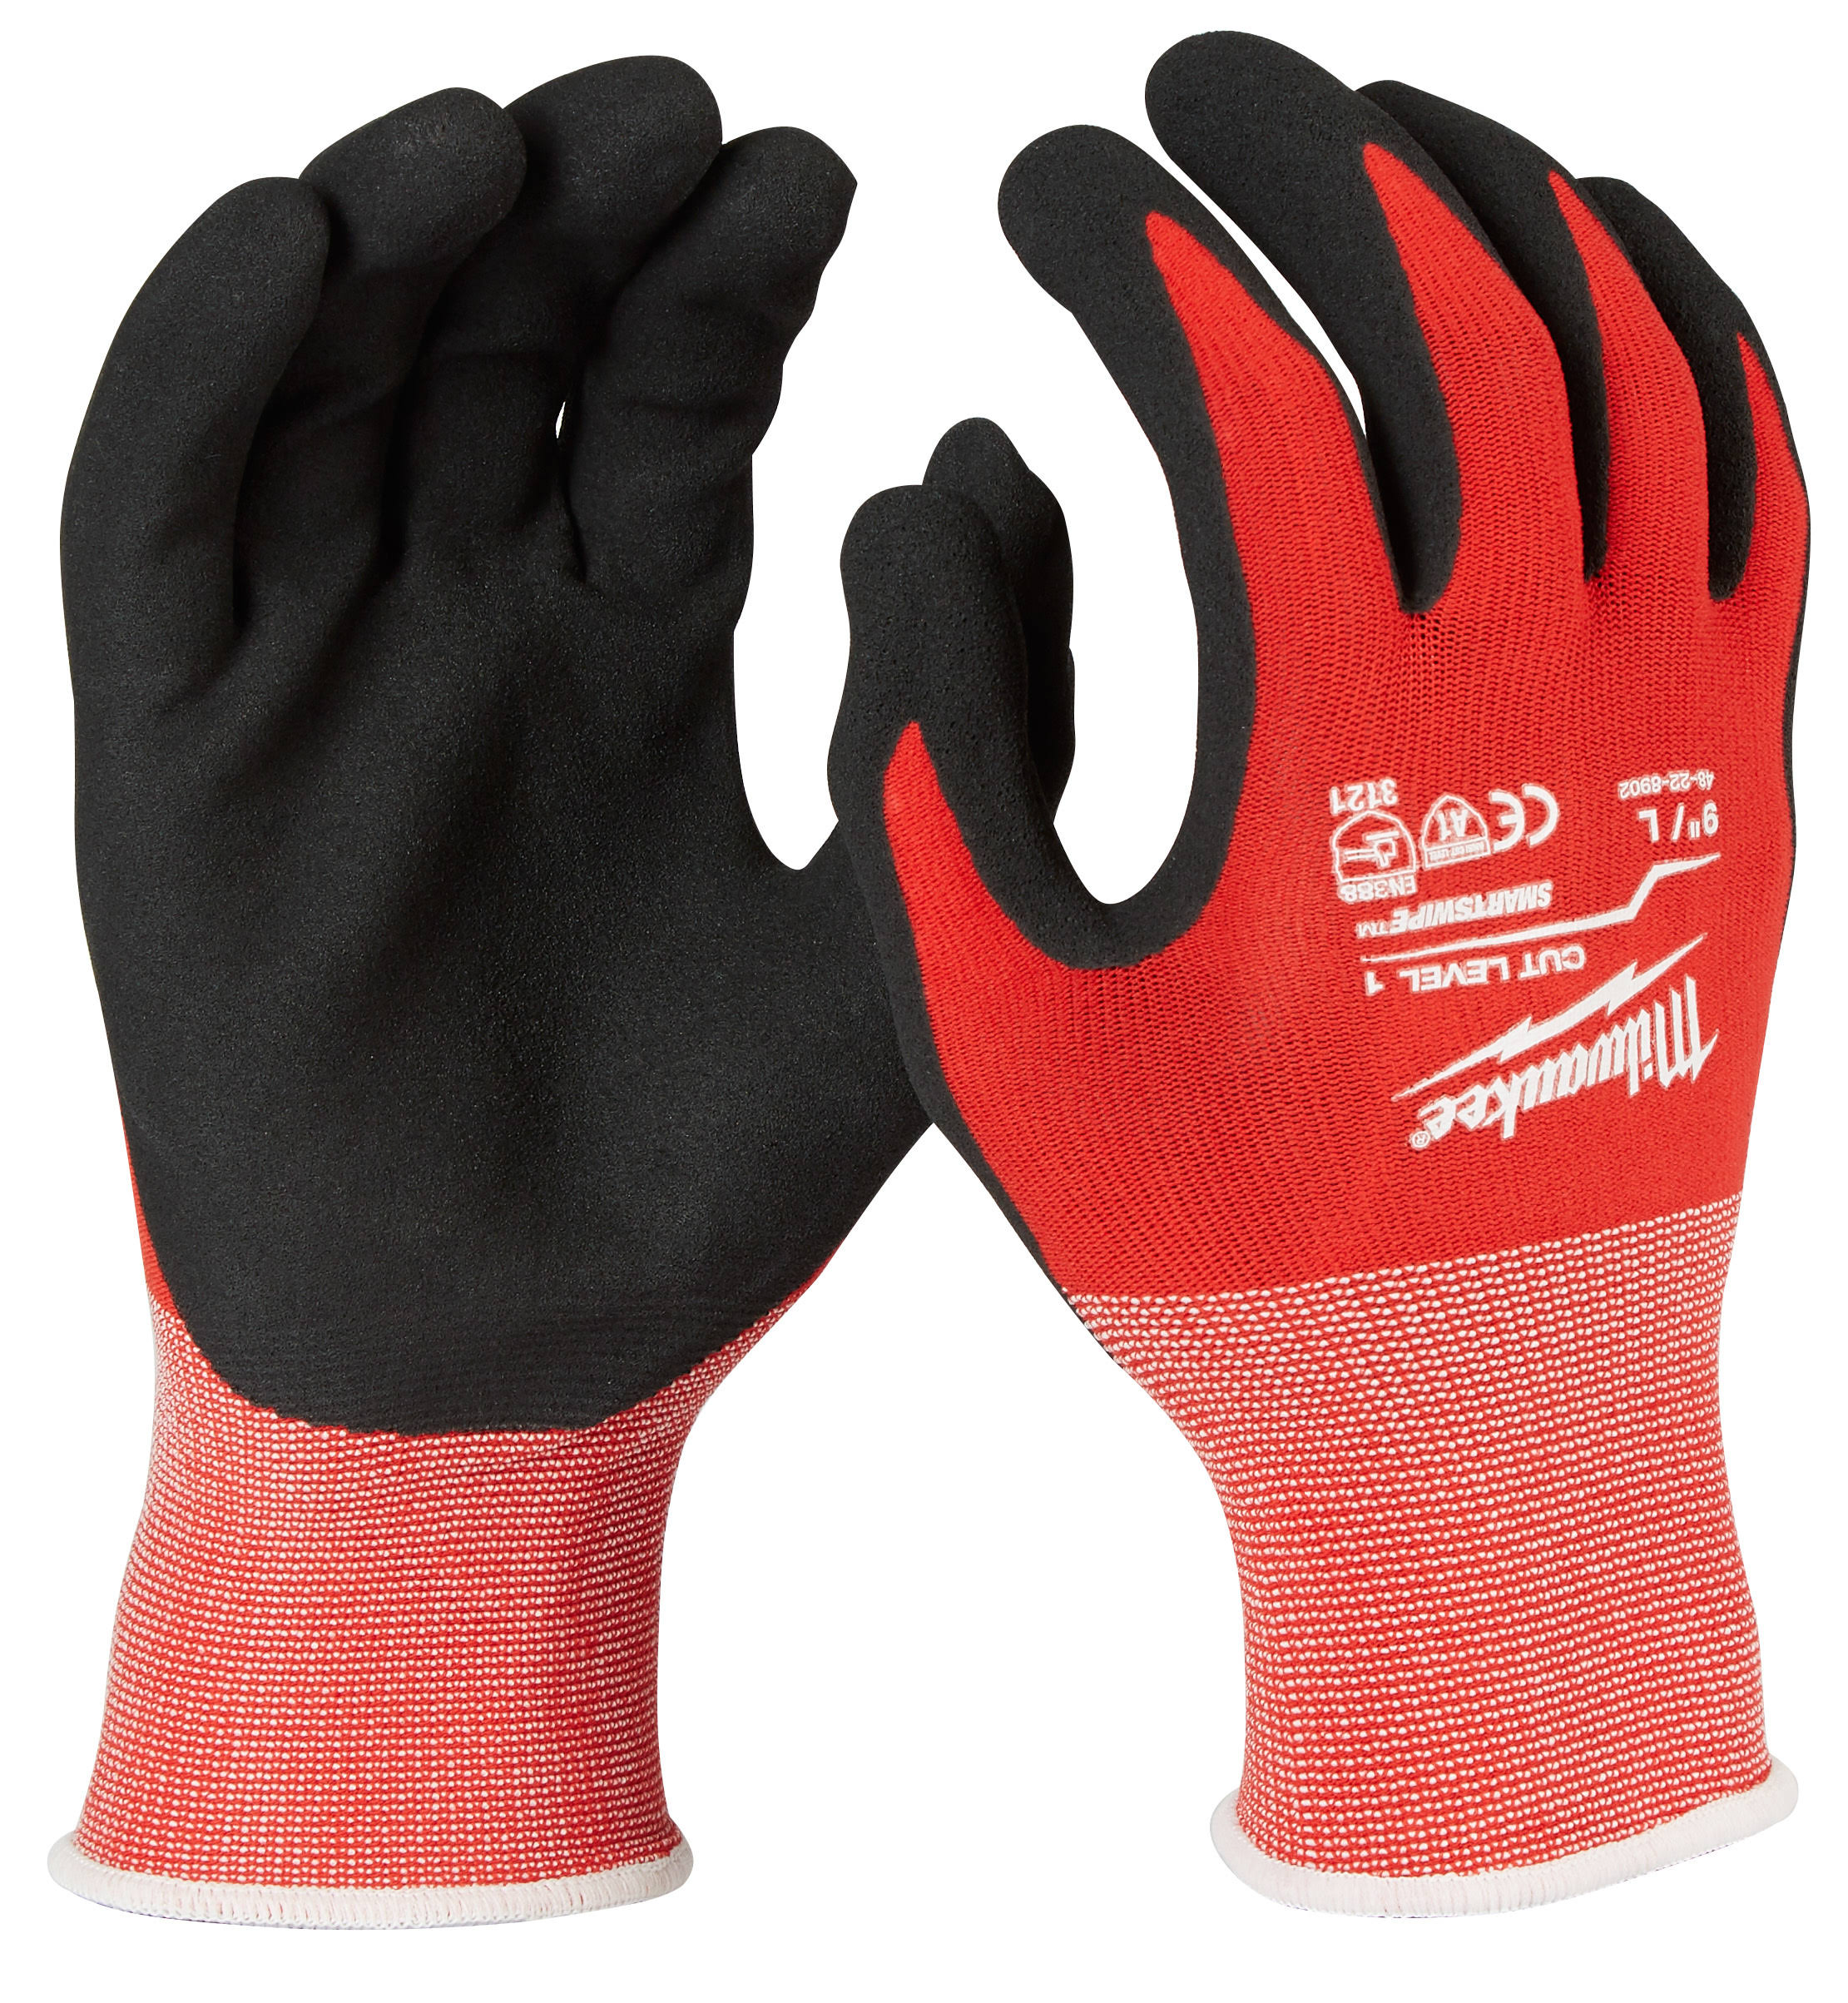 Milwaukee Nitrile Dipped Work Gloves - Red, Large